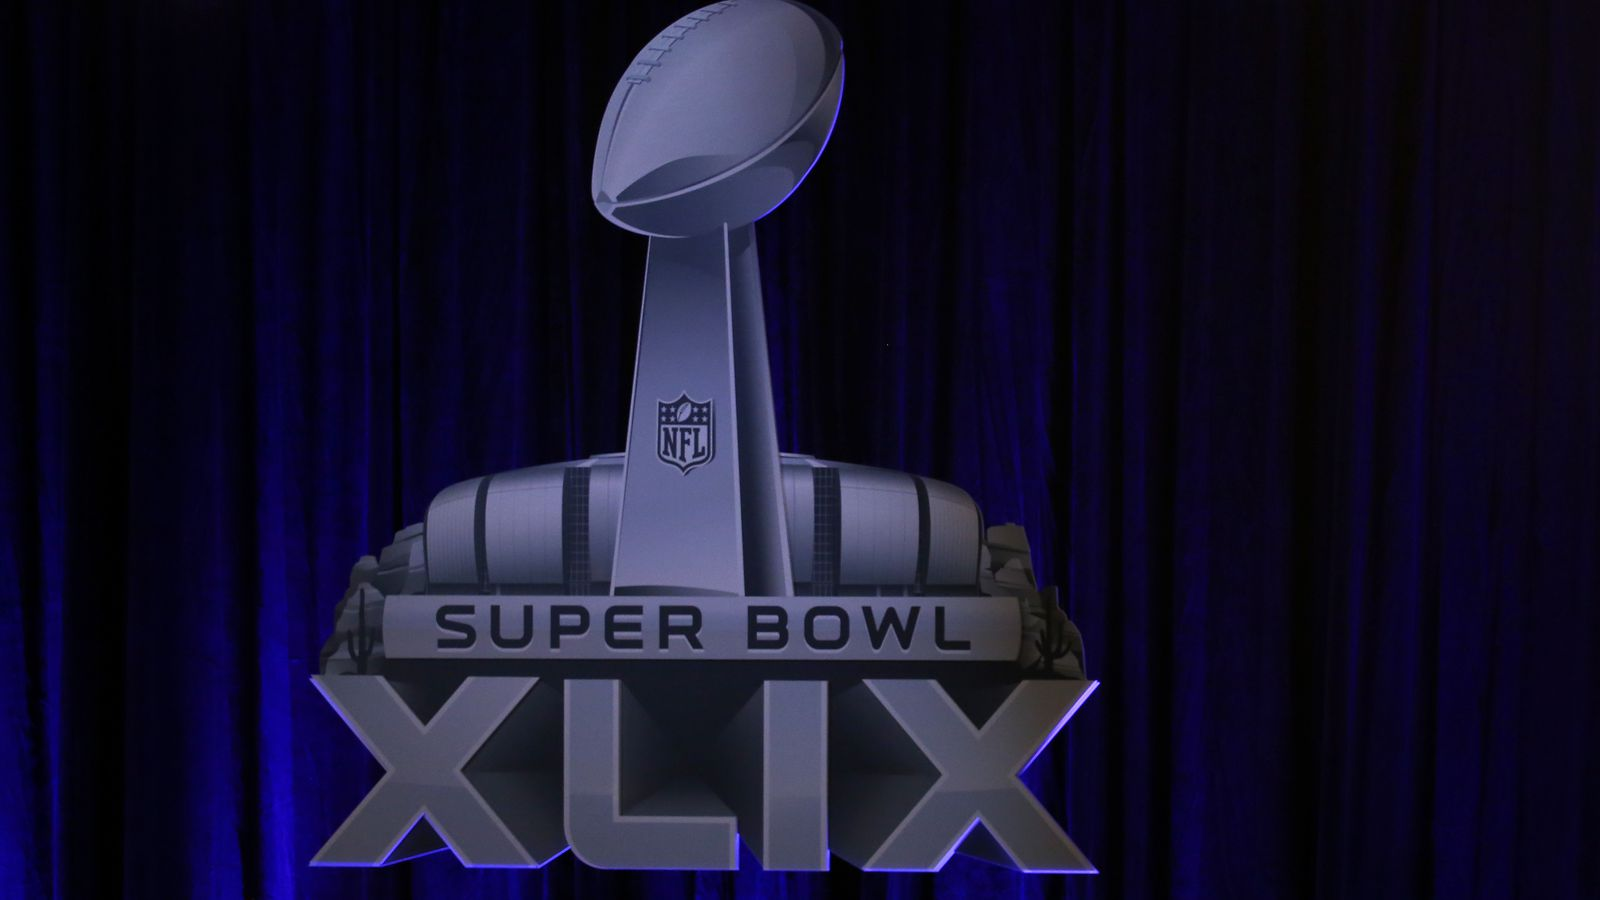 How to watch Super Bowl 49 internationally